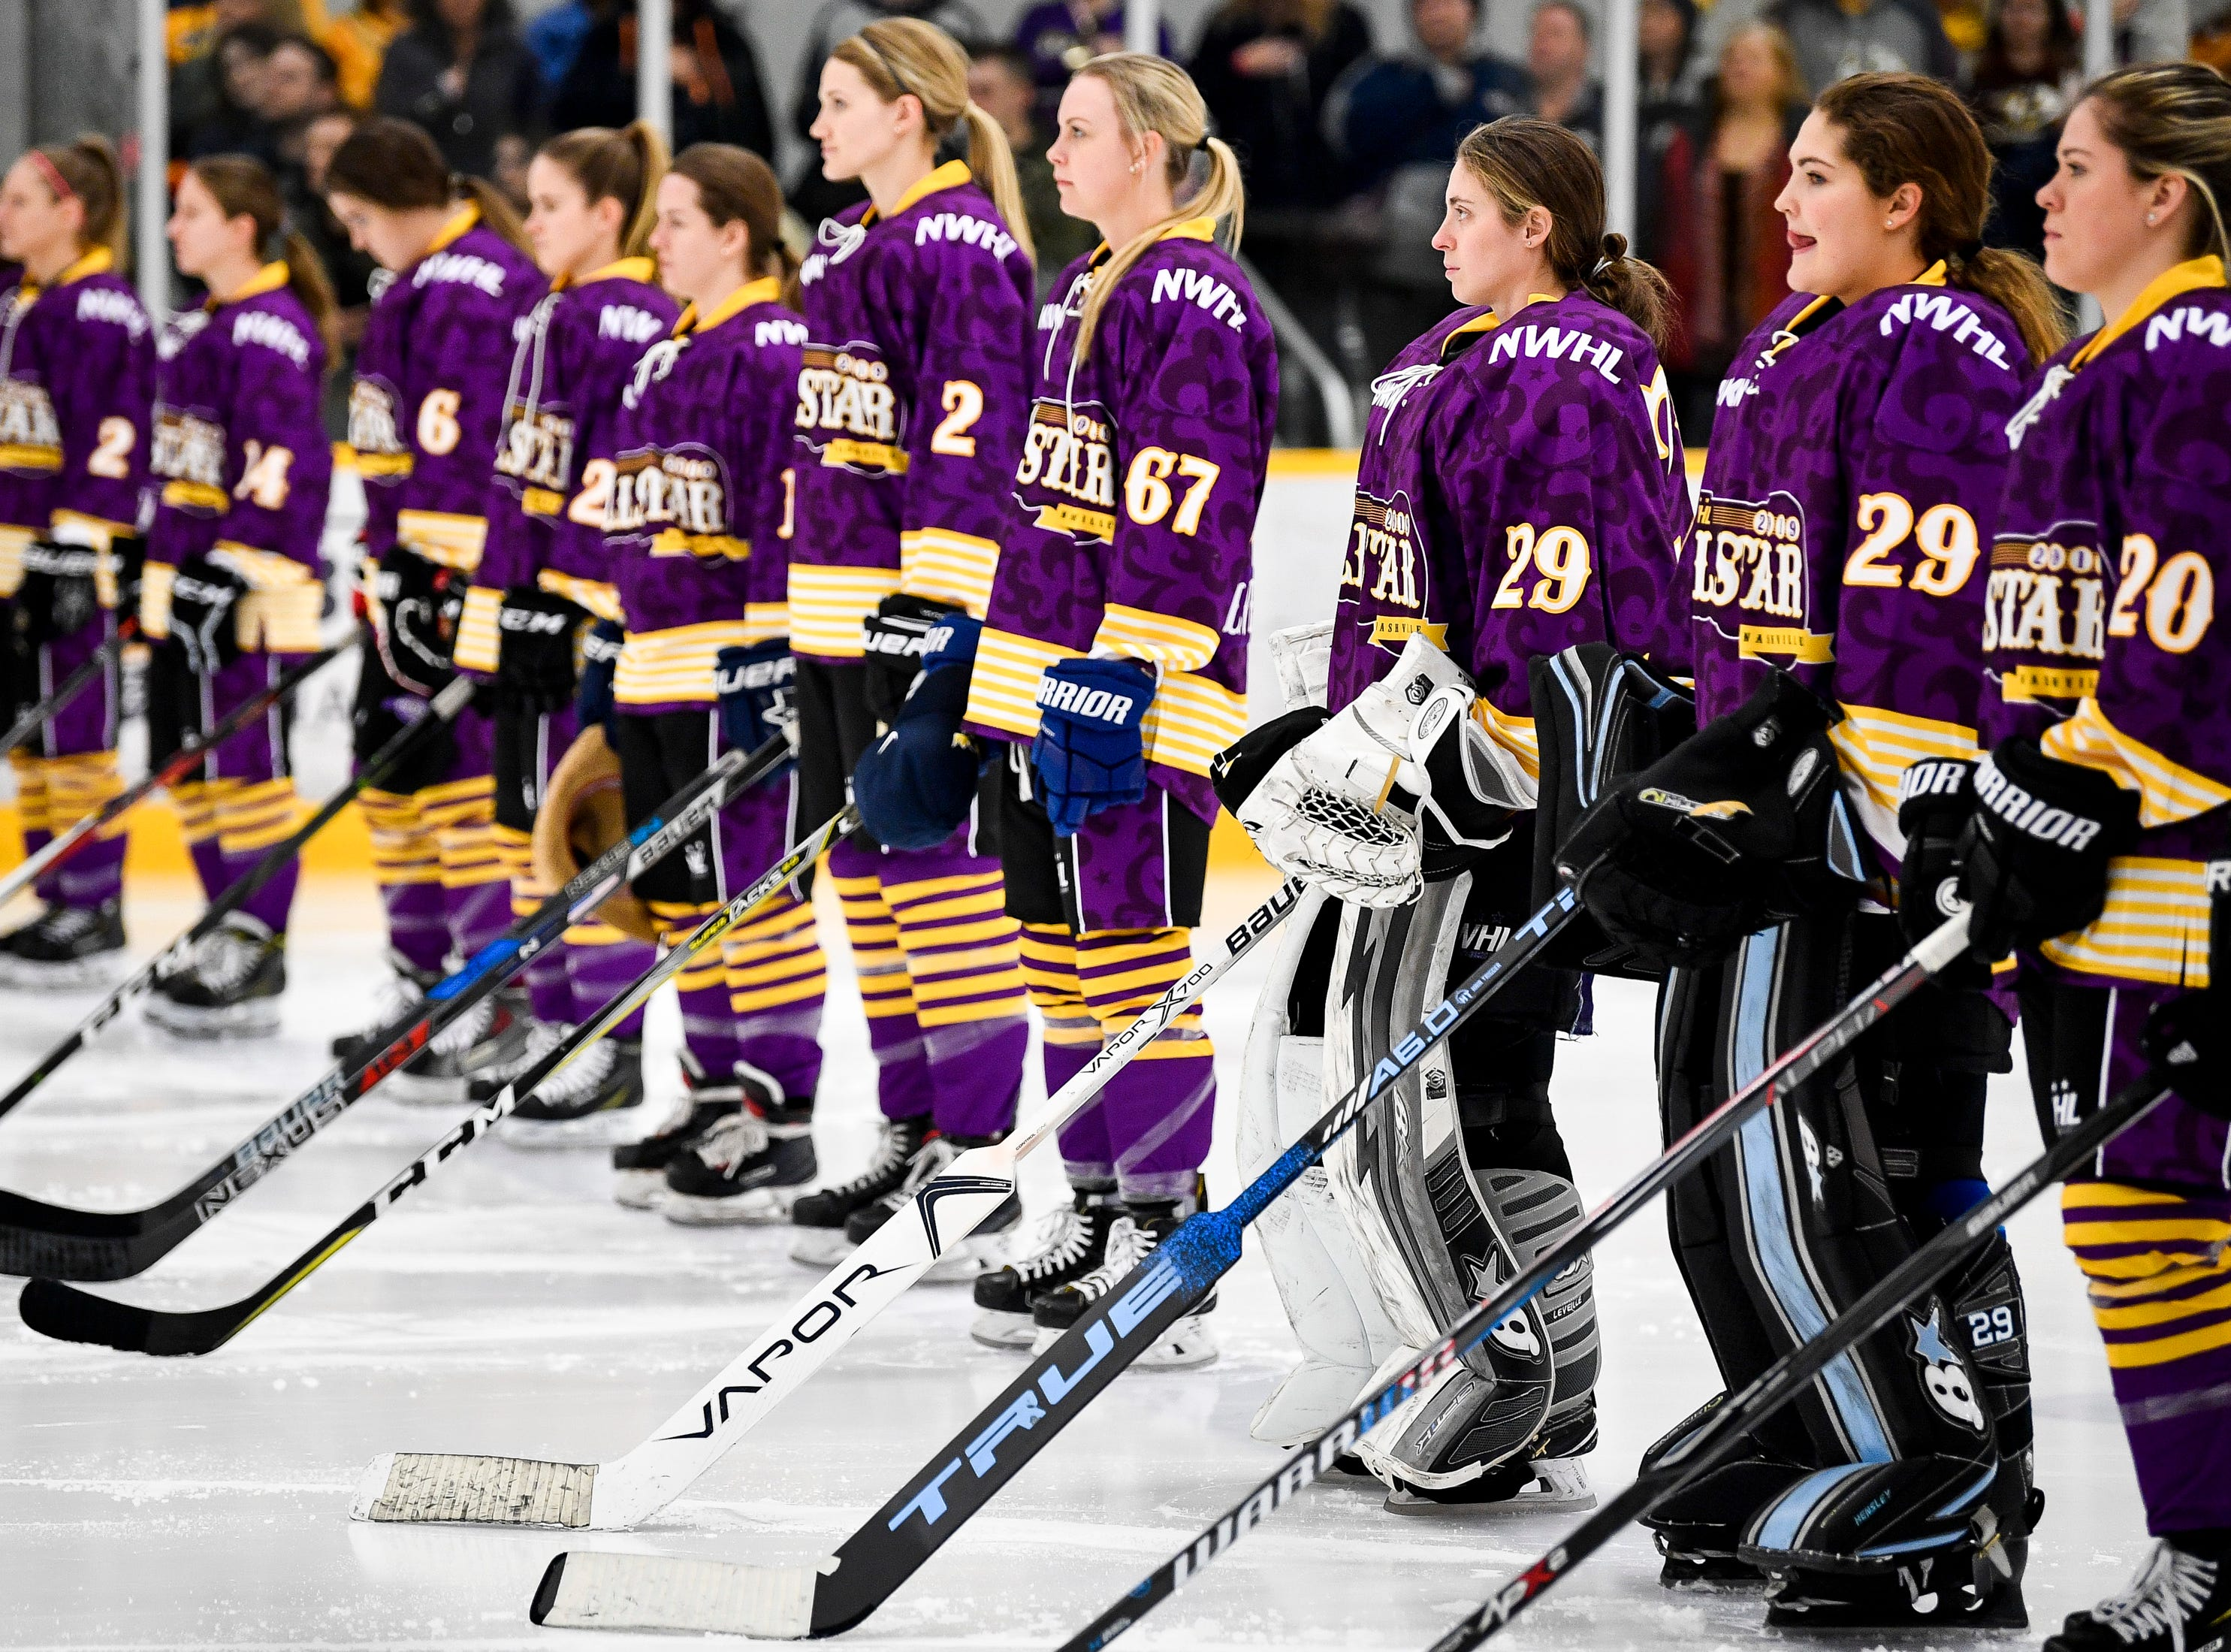 Team Stecklein players line up before the 2019 NWHL All-Star Weekend Skills Competition at Ford Ice Center in Antioch, Tenn., Saturday, Feb. 9, 2019.